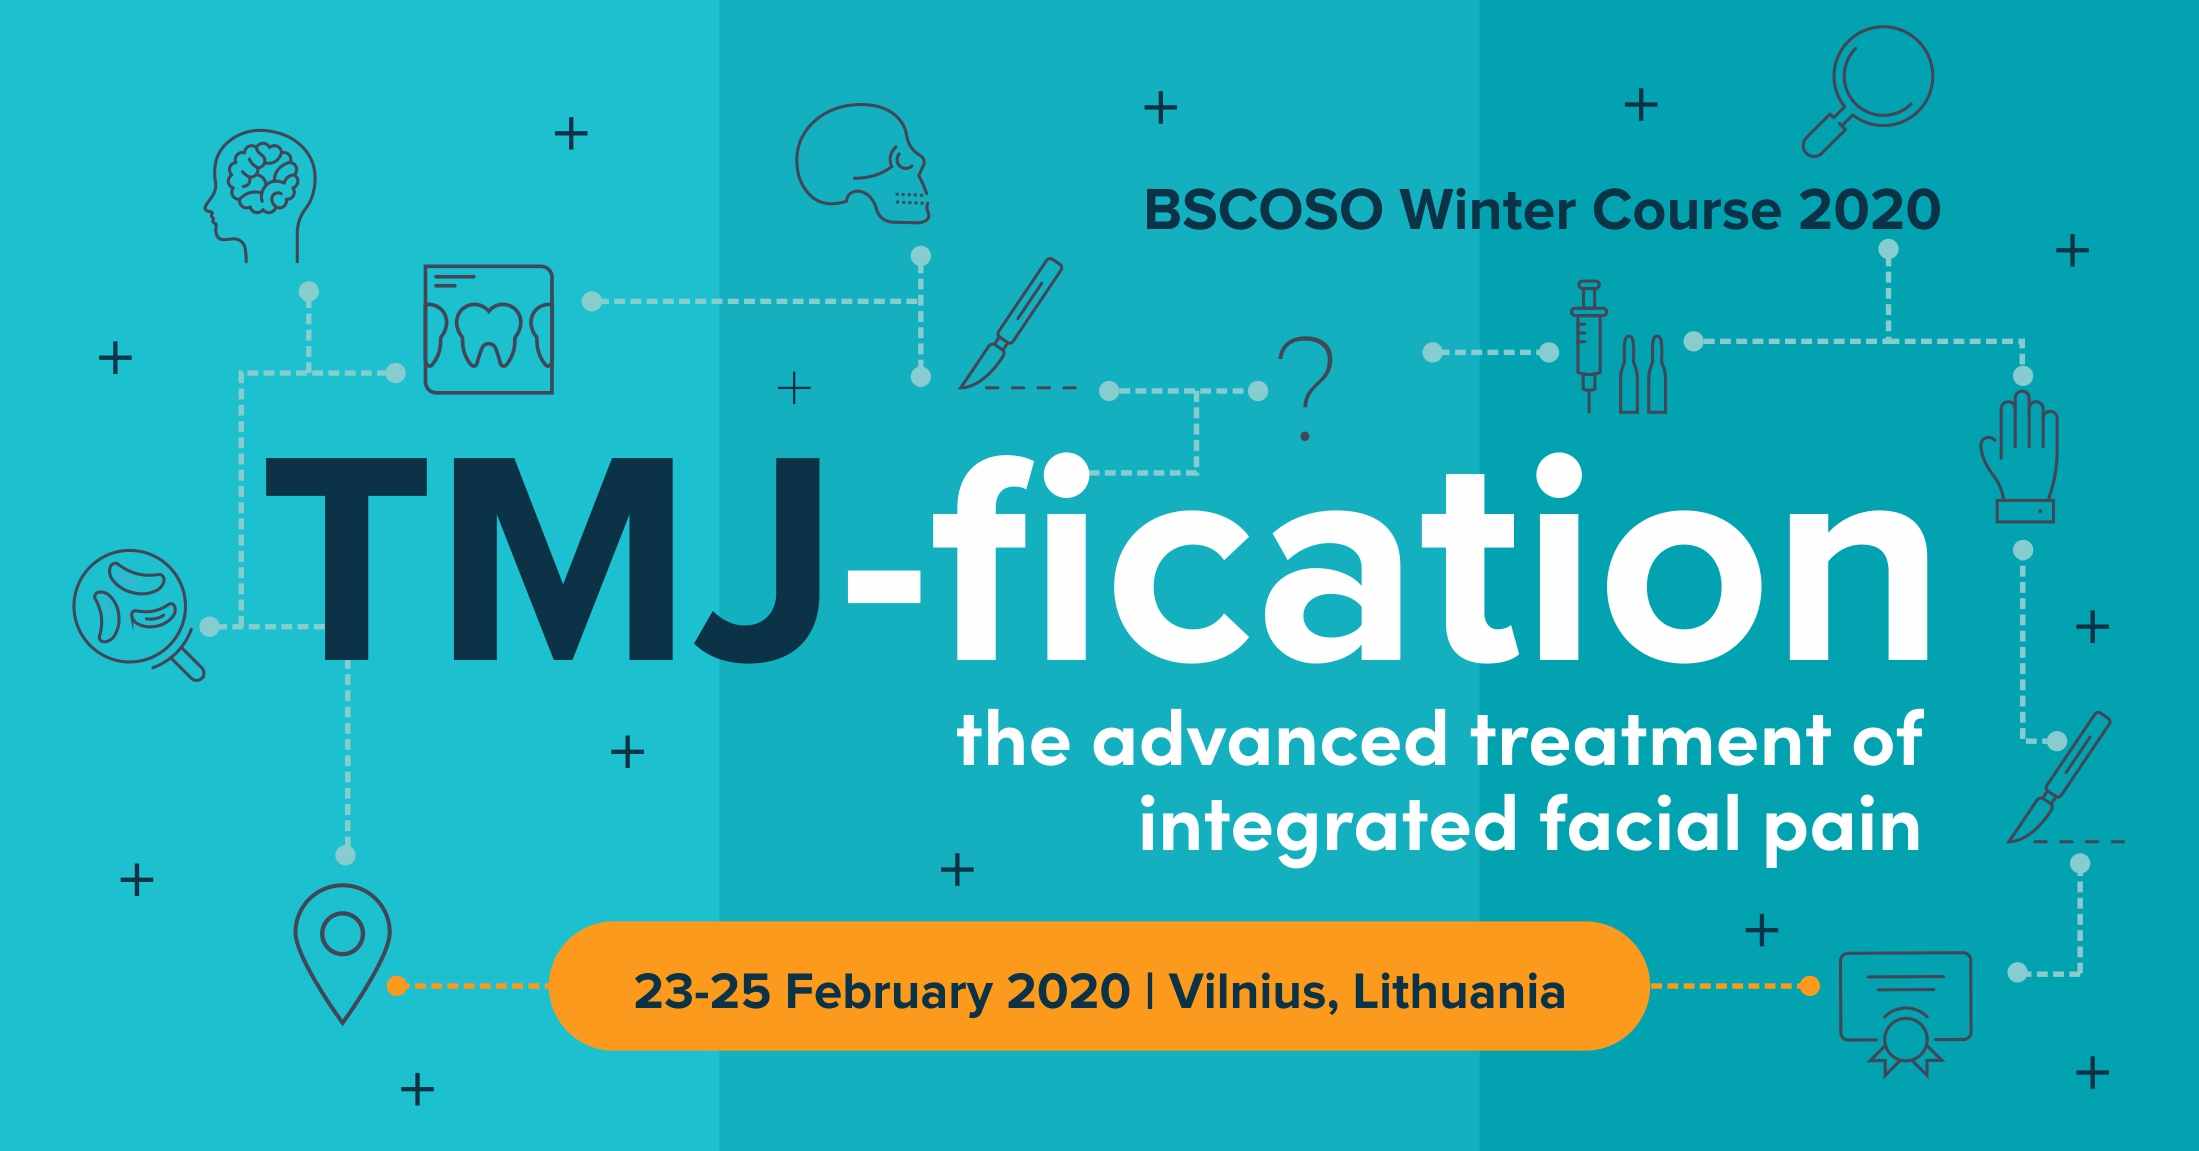 BSCOSO WINTER COURSE · TMJ-fication  FORMEDIKA DISCOUNT!